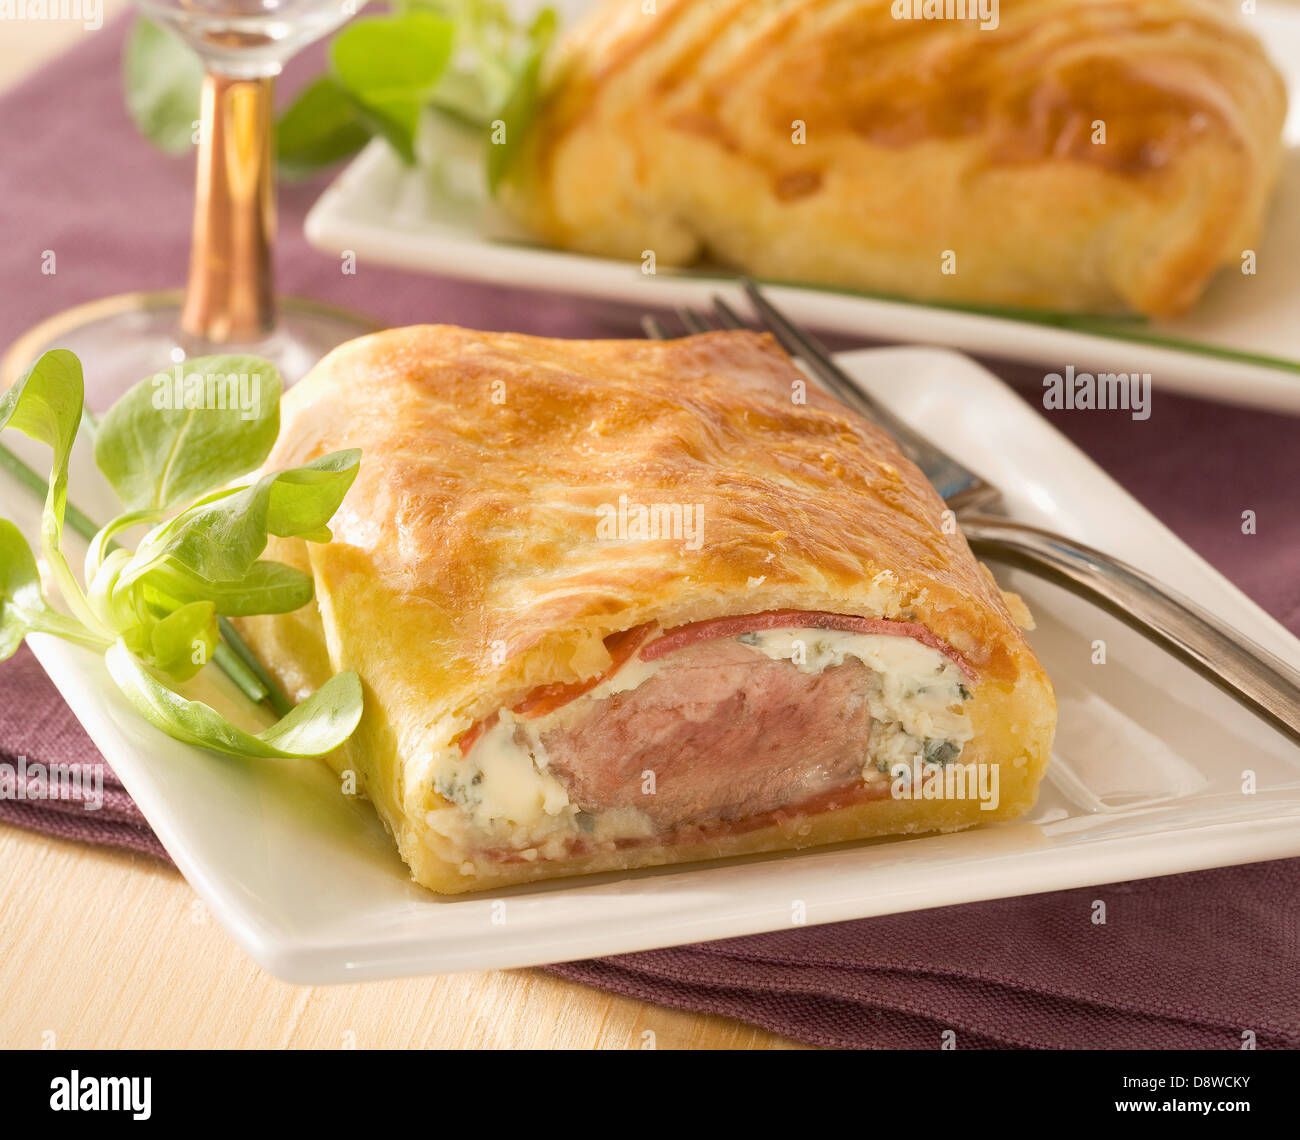 Meat and cheese flaky pastry pie - Stock Image